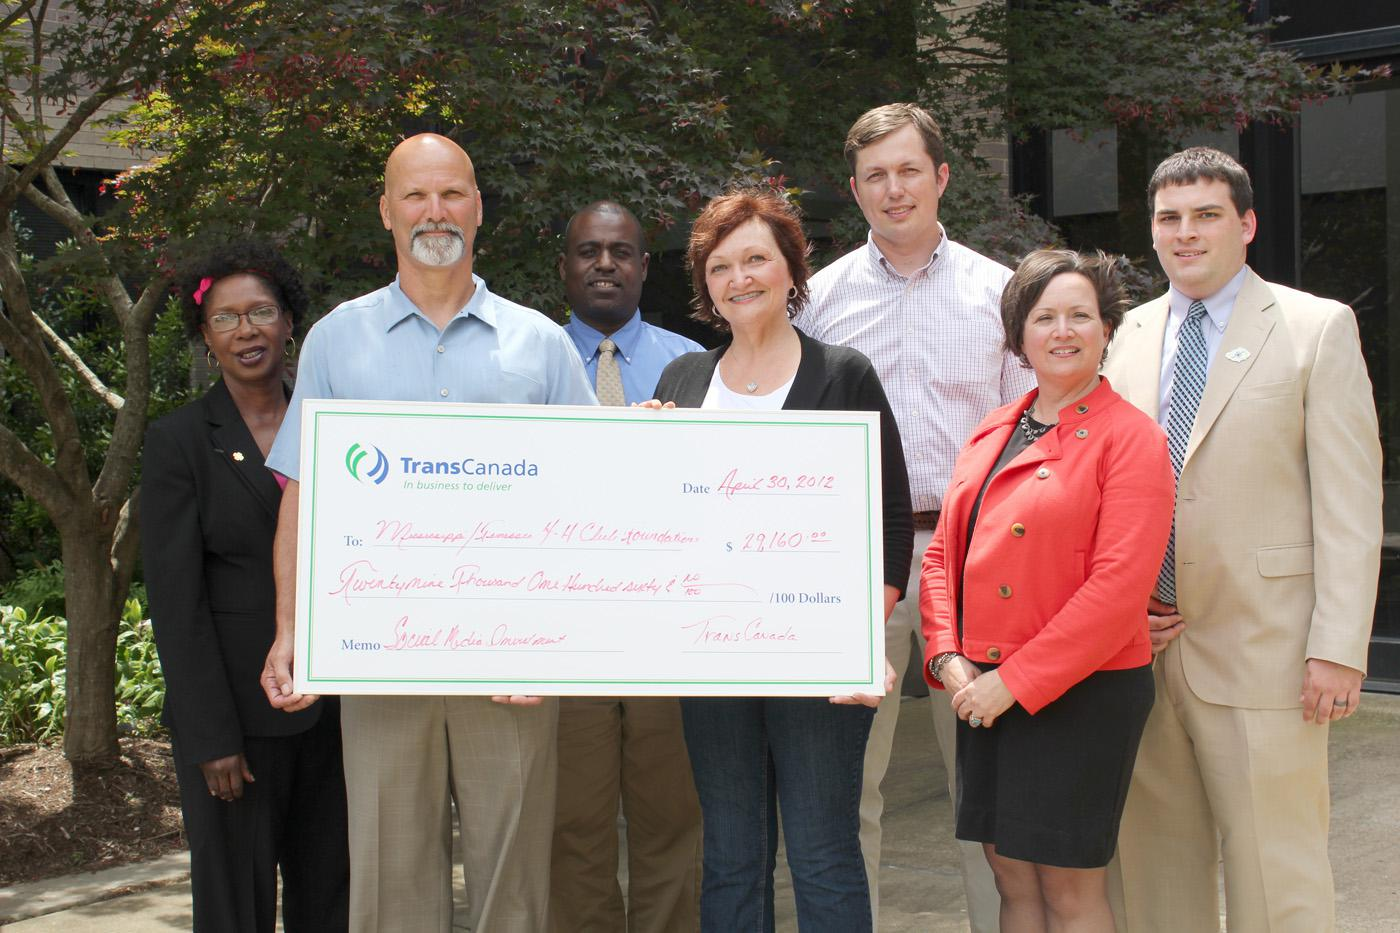 Representatives from TransCanada, Mississippi State University Extension Service and the University of Tennessee met in Jackson, Tenn. for a check presentation ceremony celebrating the donation of nearly $30,000 to 4-H. Those present include (front, from left) James Ethridge, Sardis area manager, TransCanada; Laura Noble, mid-America region, community investment coordinator, TransCanada; and Donna Eason-Pile, assistant development director, UT Extension; (back, from left) Paula Threadgill, interim program l